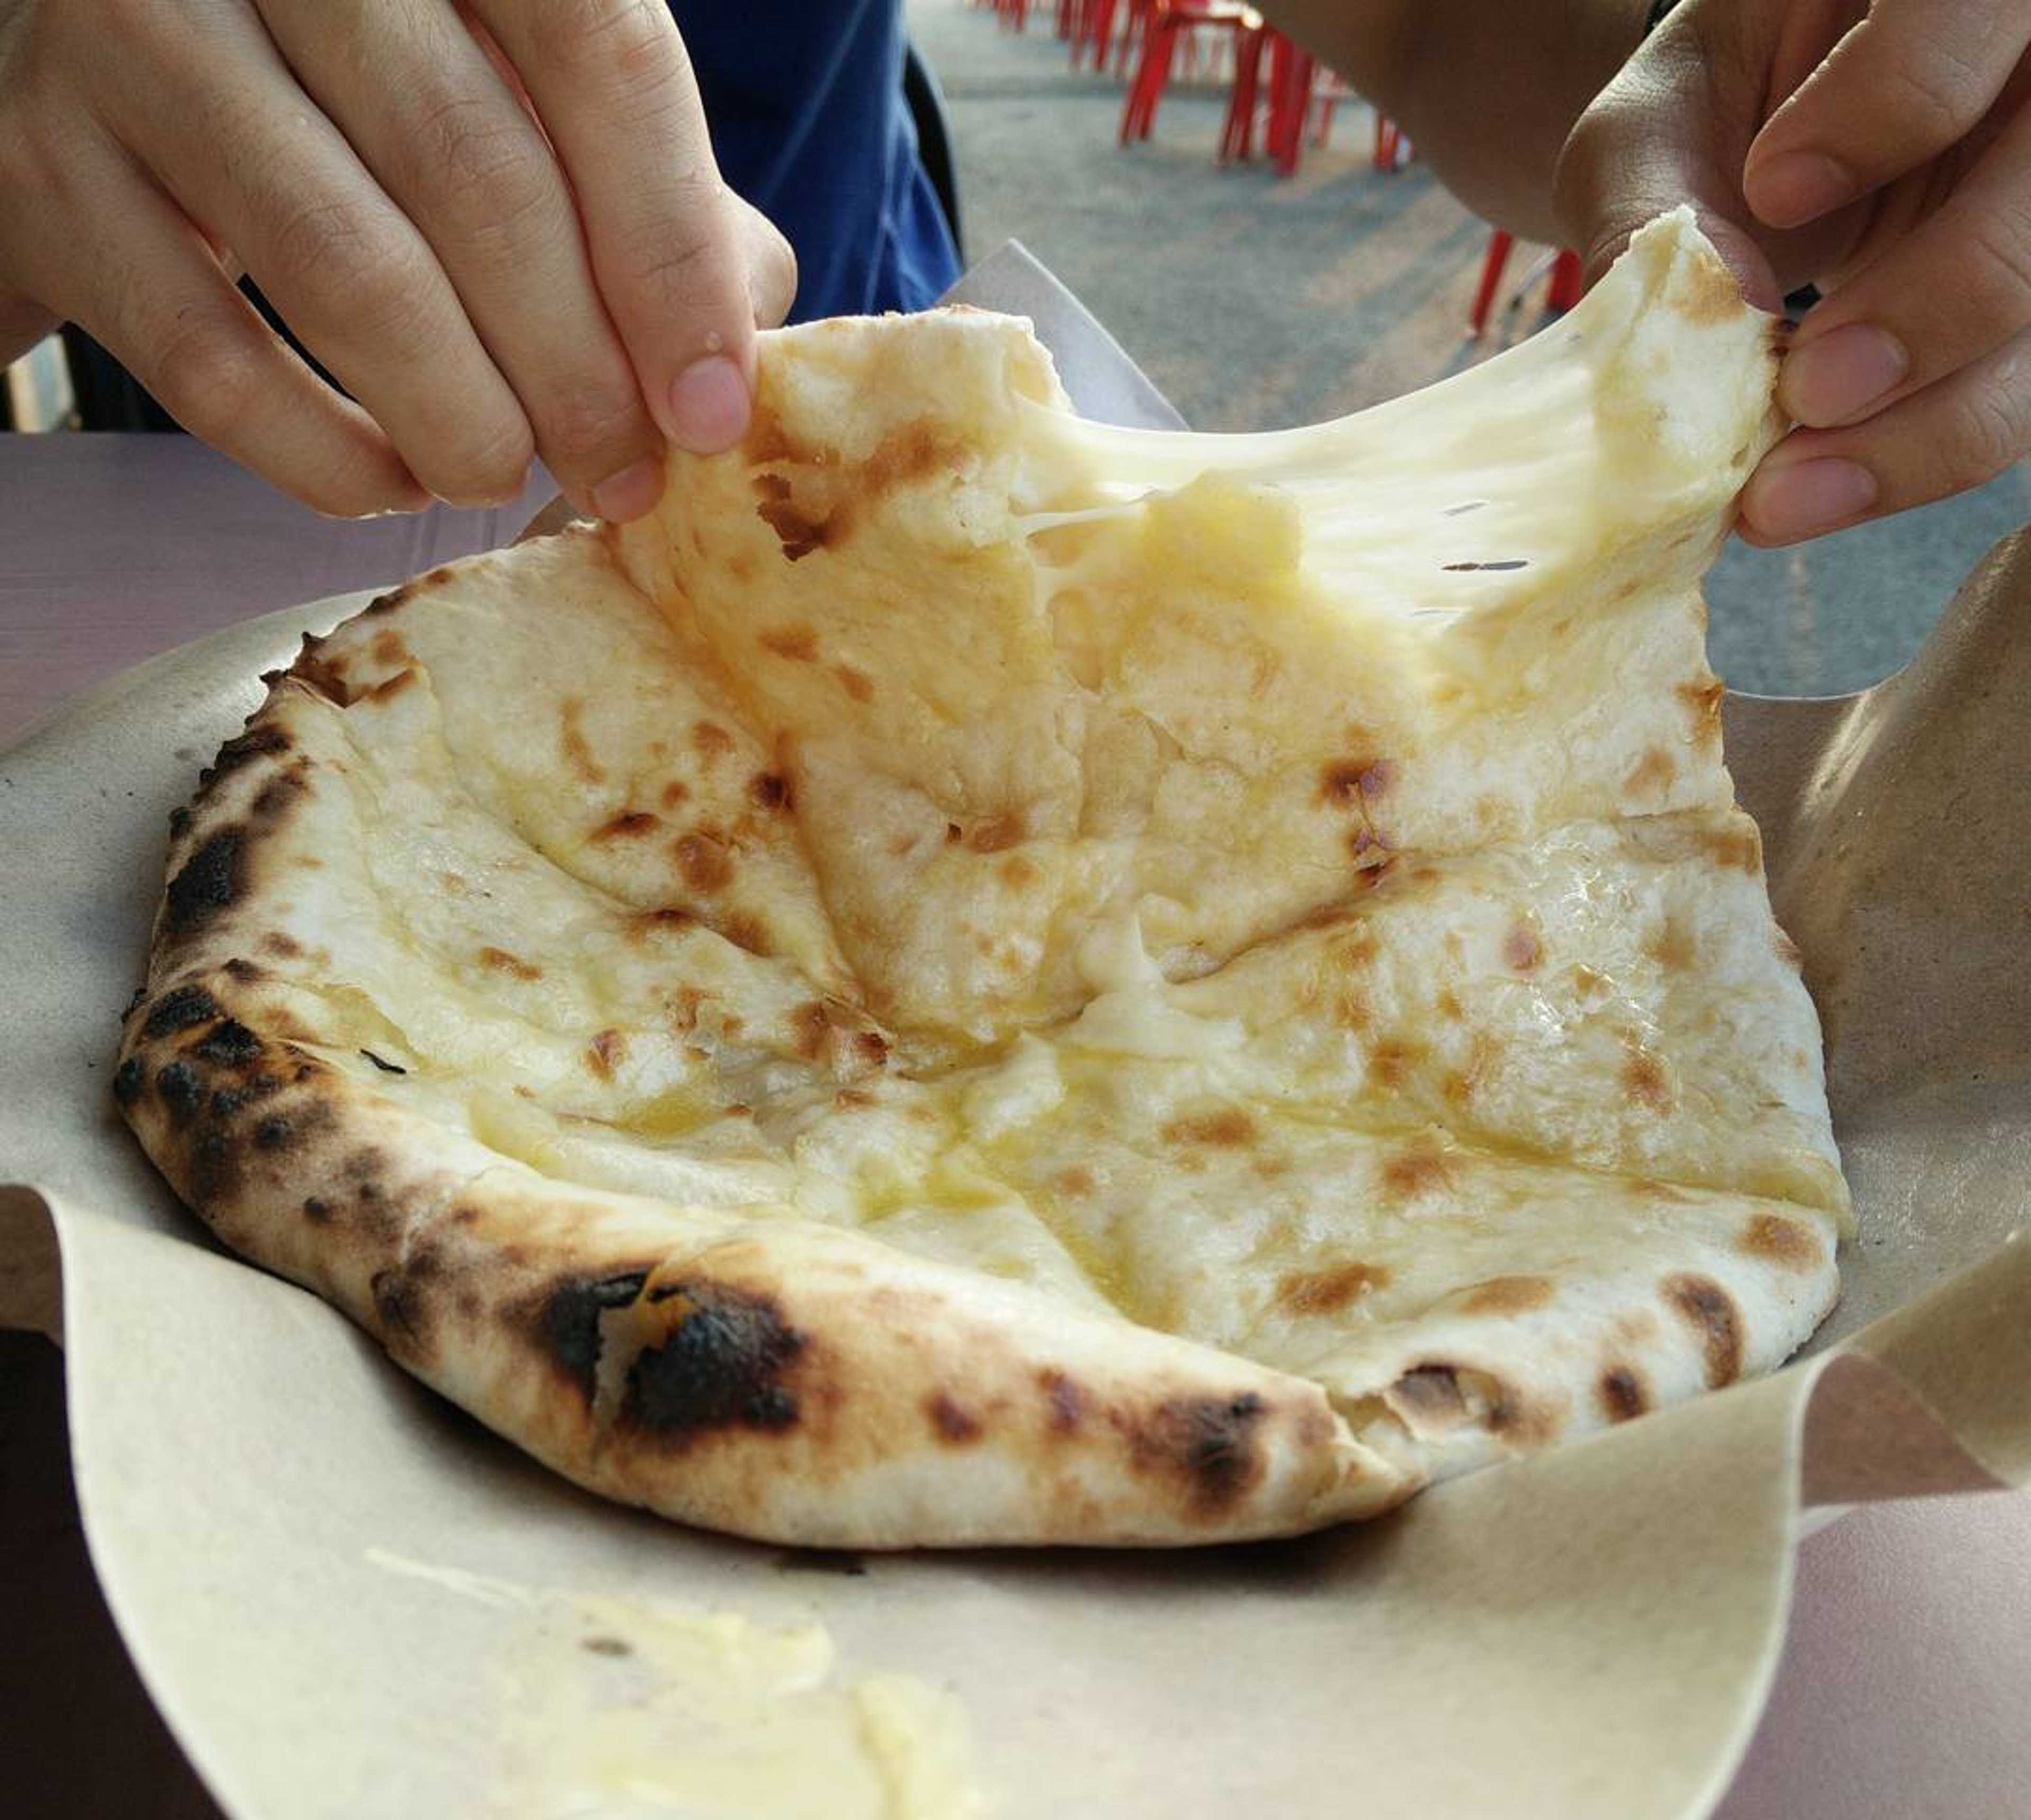 20 - Cheese Naan